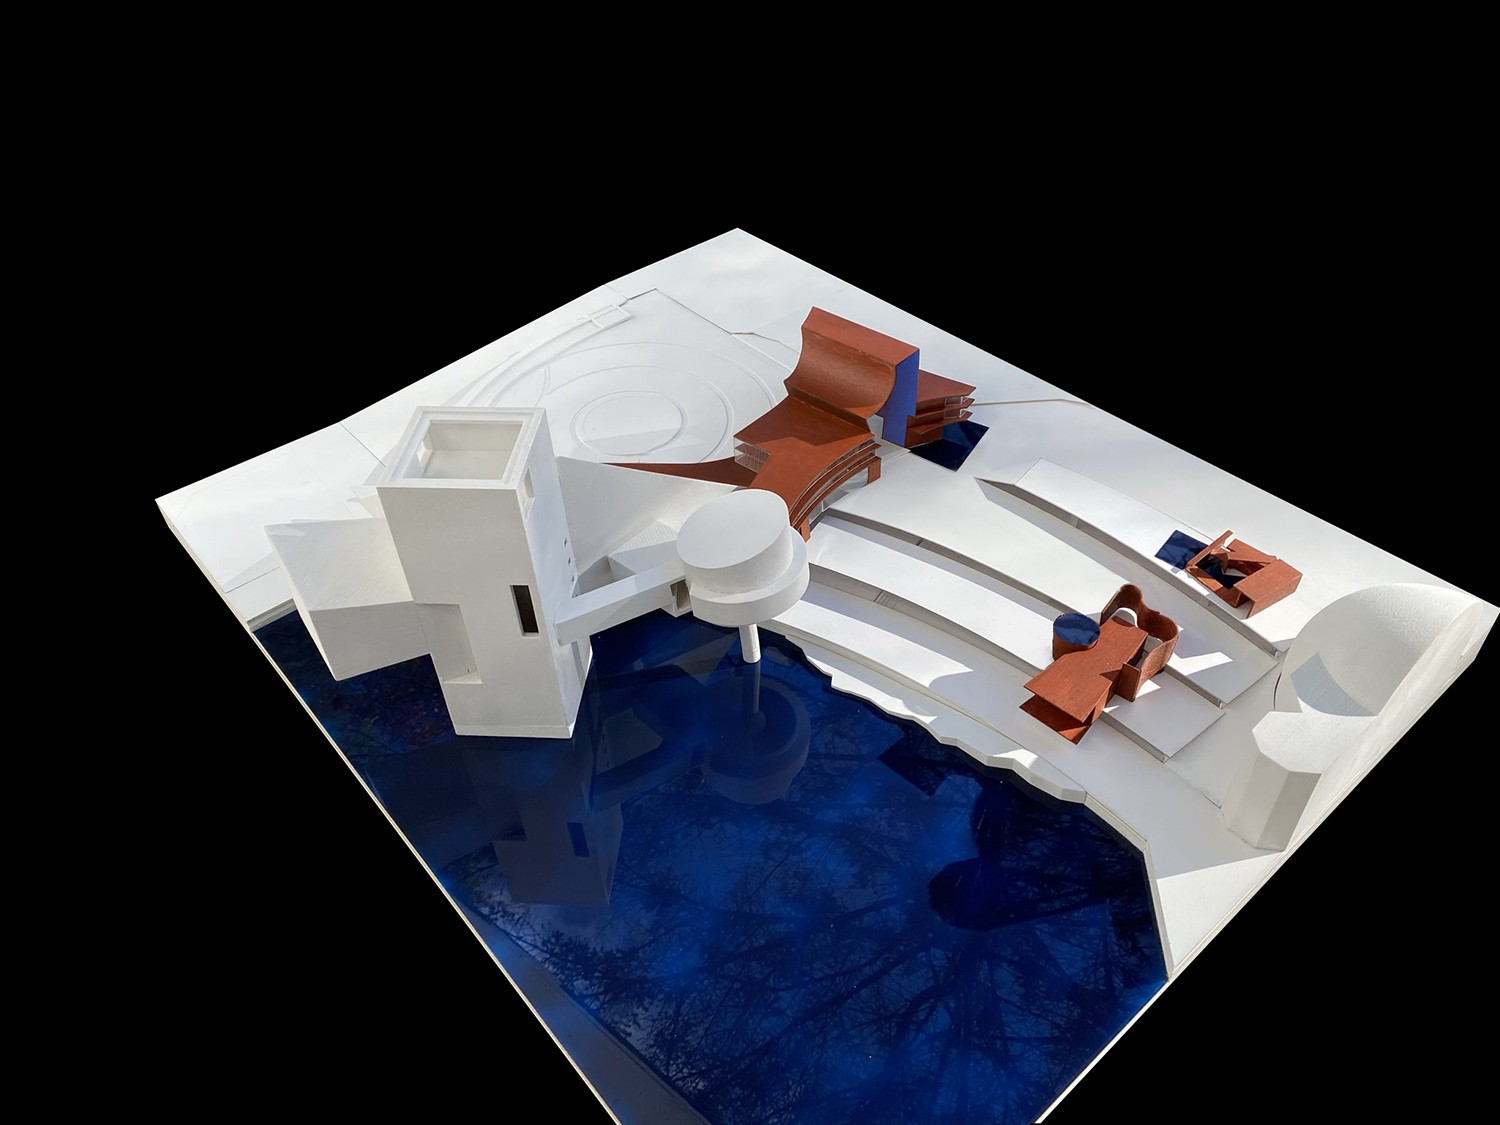 https://stevenholl.sfo2.digitaloceanspaces.com/uploads/projects/project-images/model 1.jpg